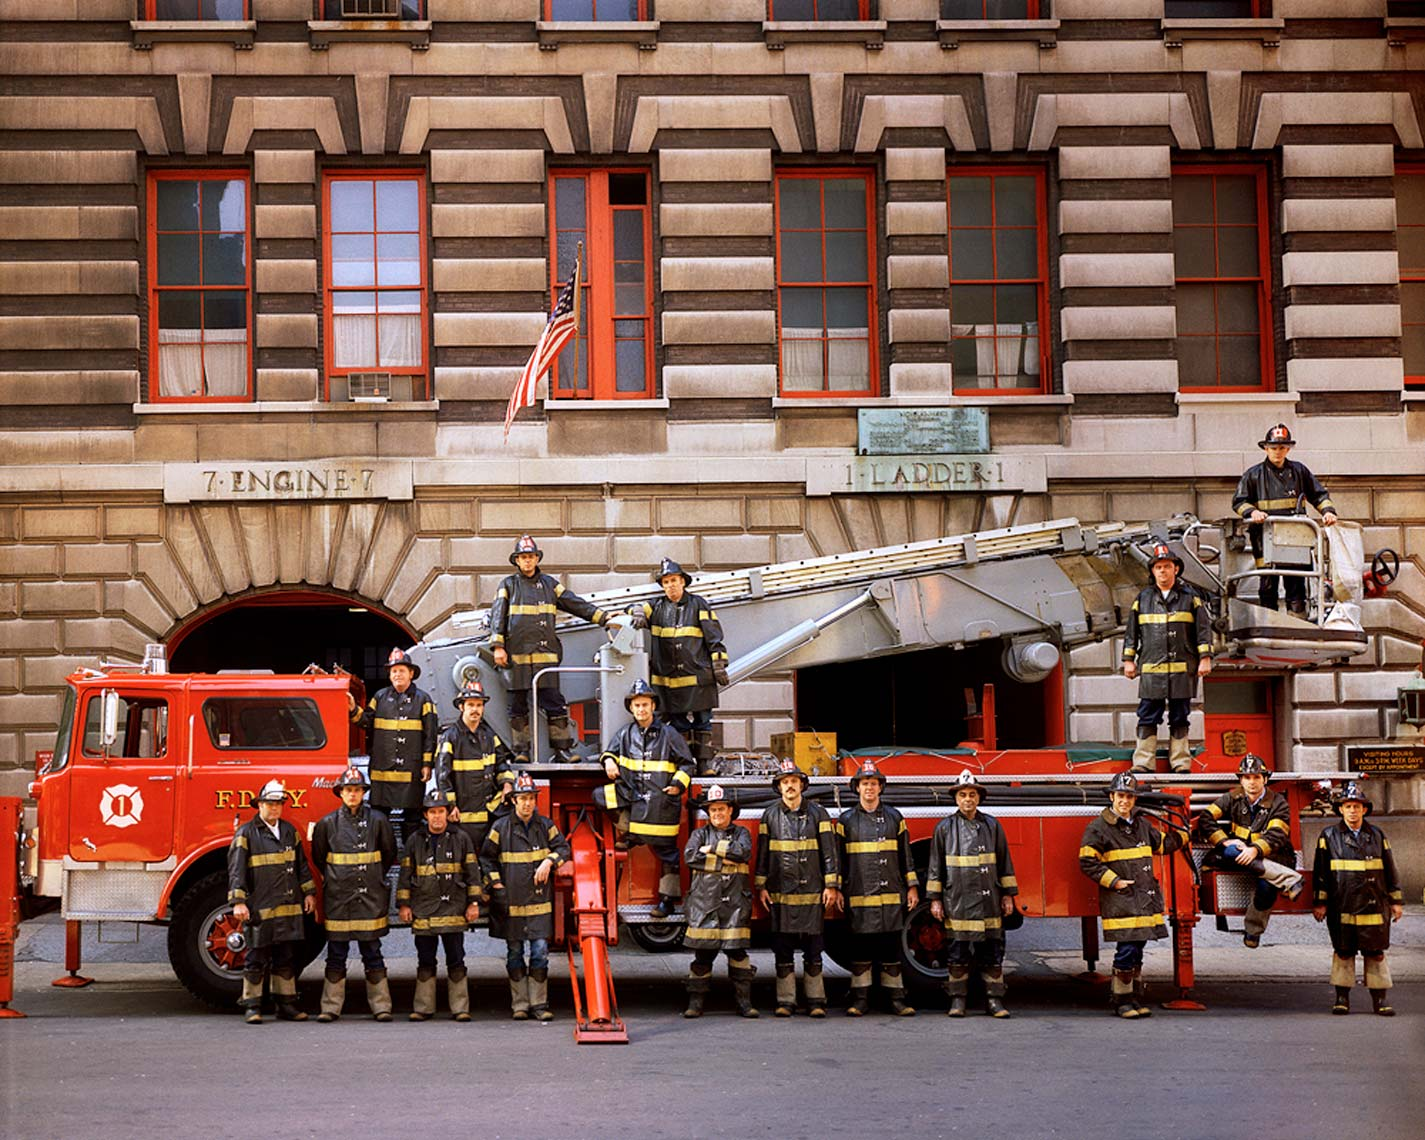 FDNY - ENGINE COMPANY #7, LADDER #1